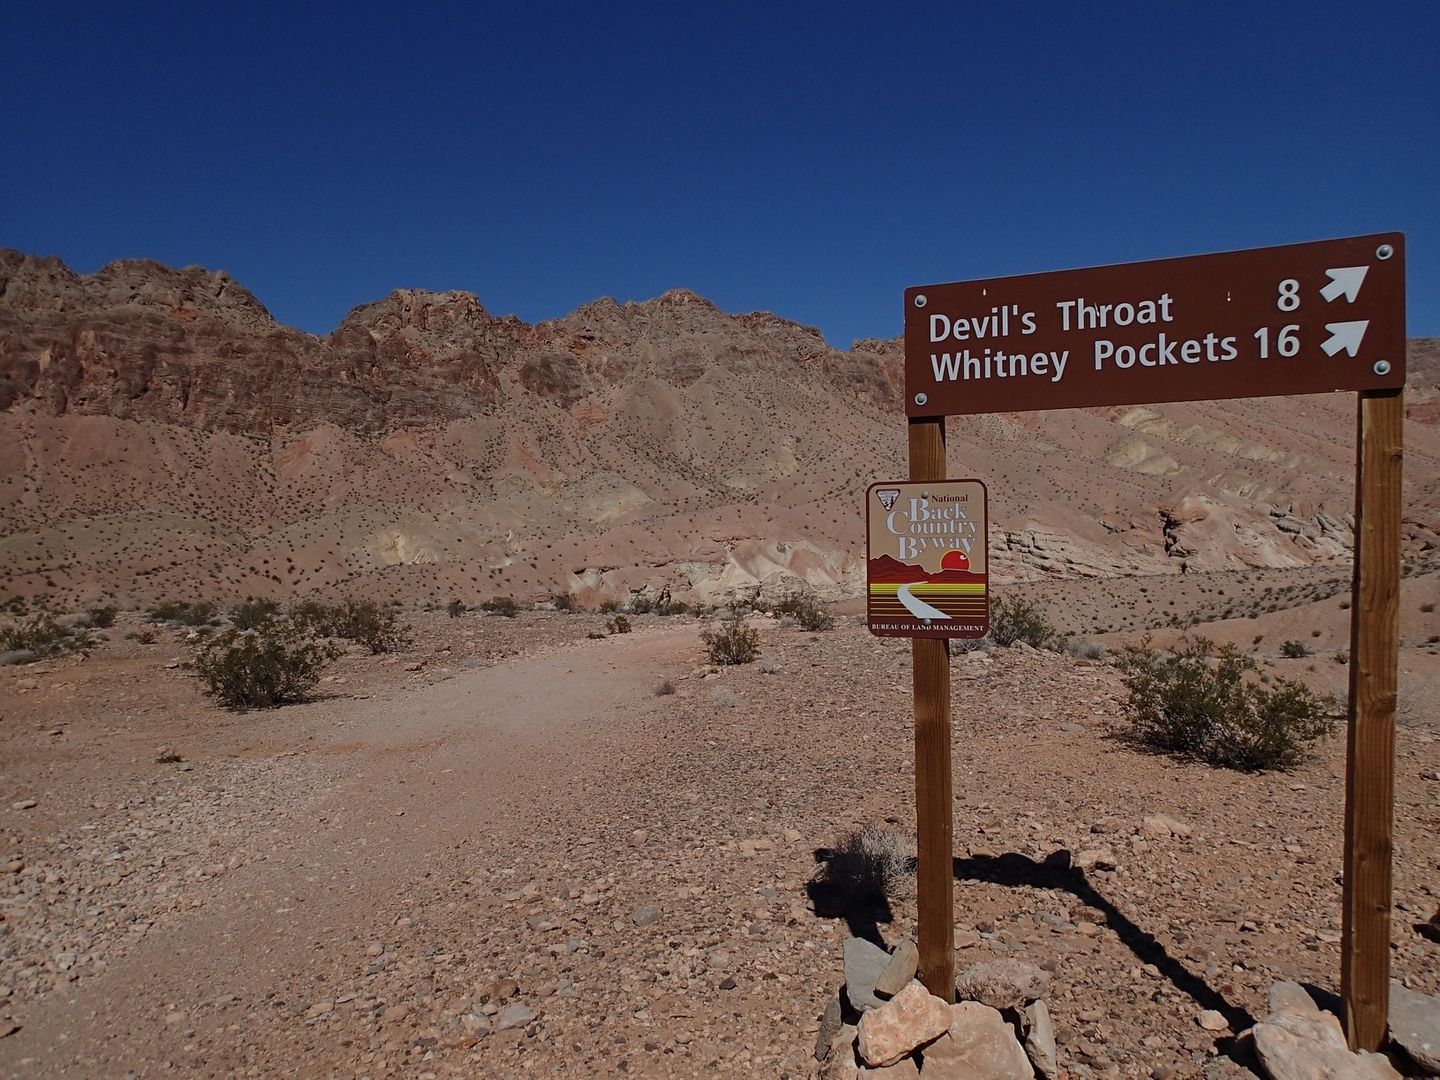 Gold Butte Backcountry Byway - Waypoint 23: Mud Wash Road to Devils Throat and Whiney Pockets